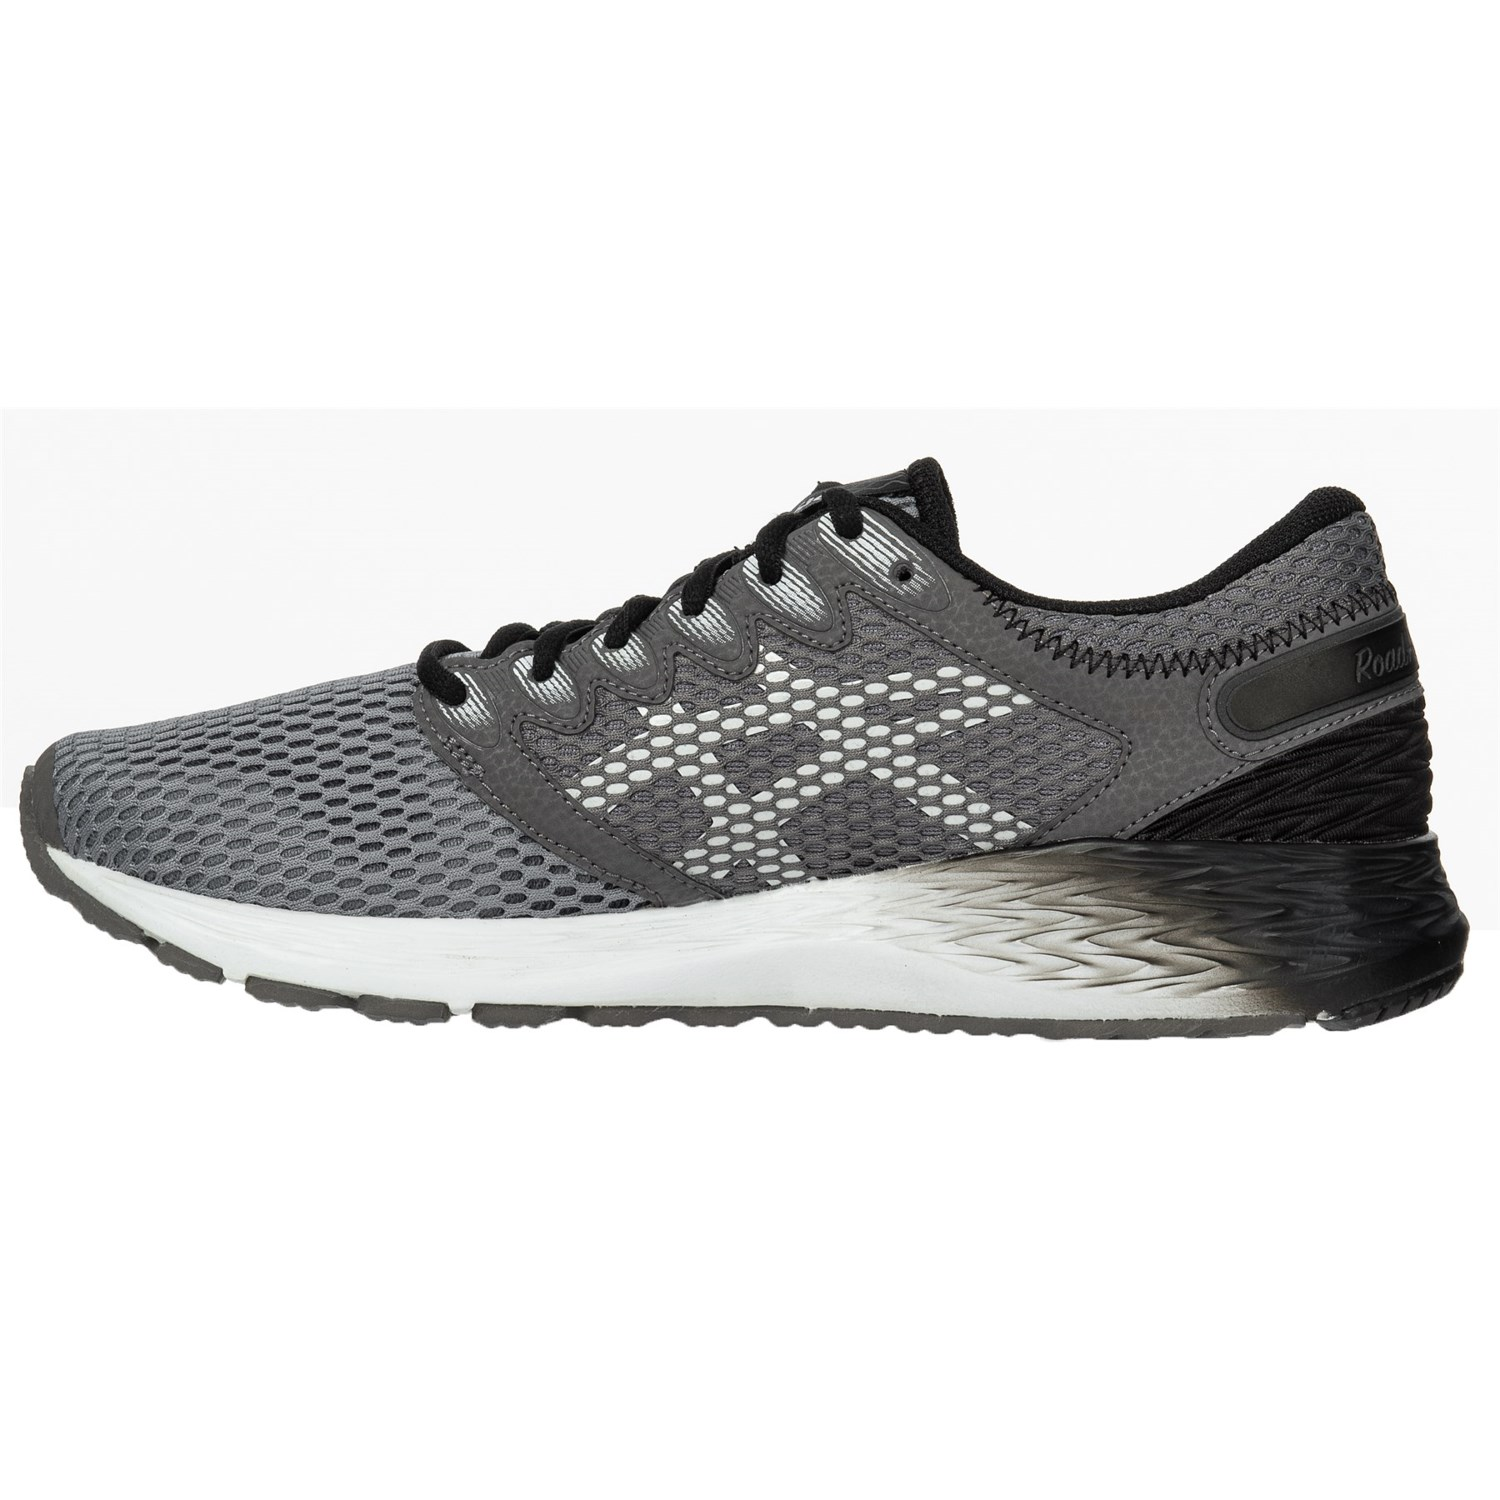 finest selection bdba8 21be8 ASICS Roadhawk FF 2 Running Shoes (For Men)